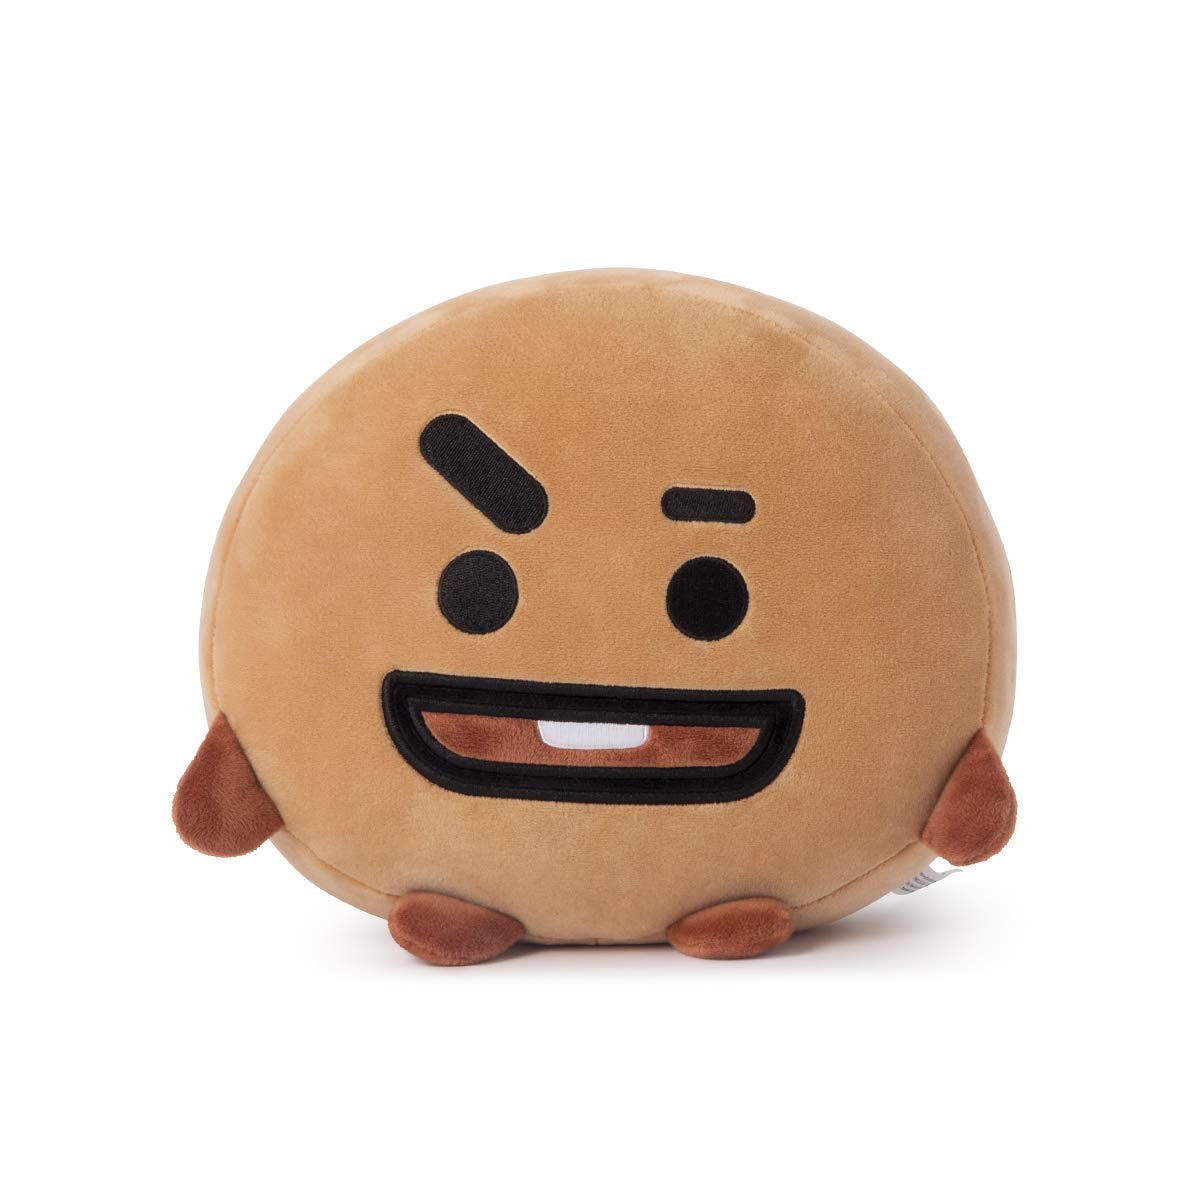 LINE FRIENDS BT21 Official Merchandise SHOOKY Mini Cushion Stuffed Pillow, Beige